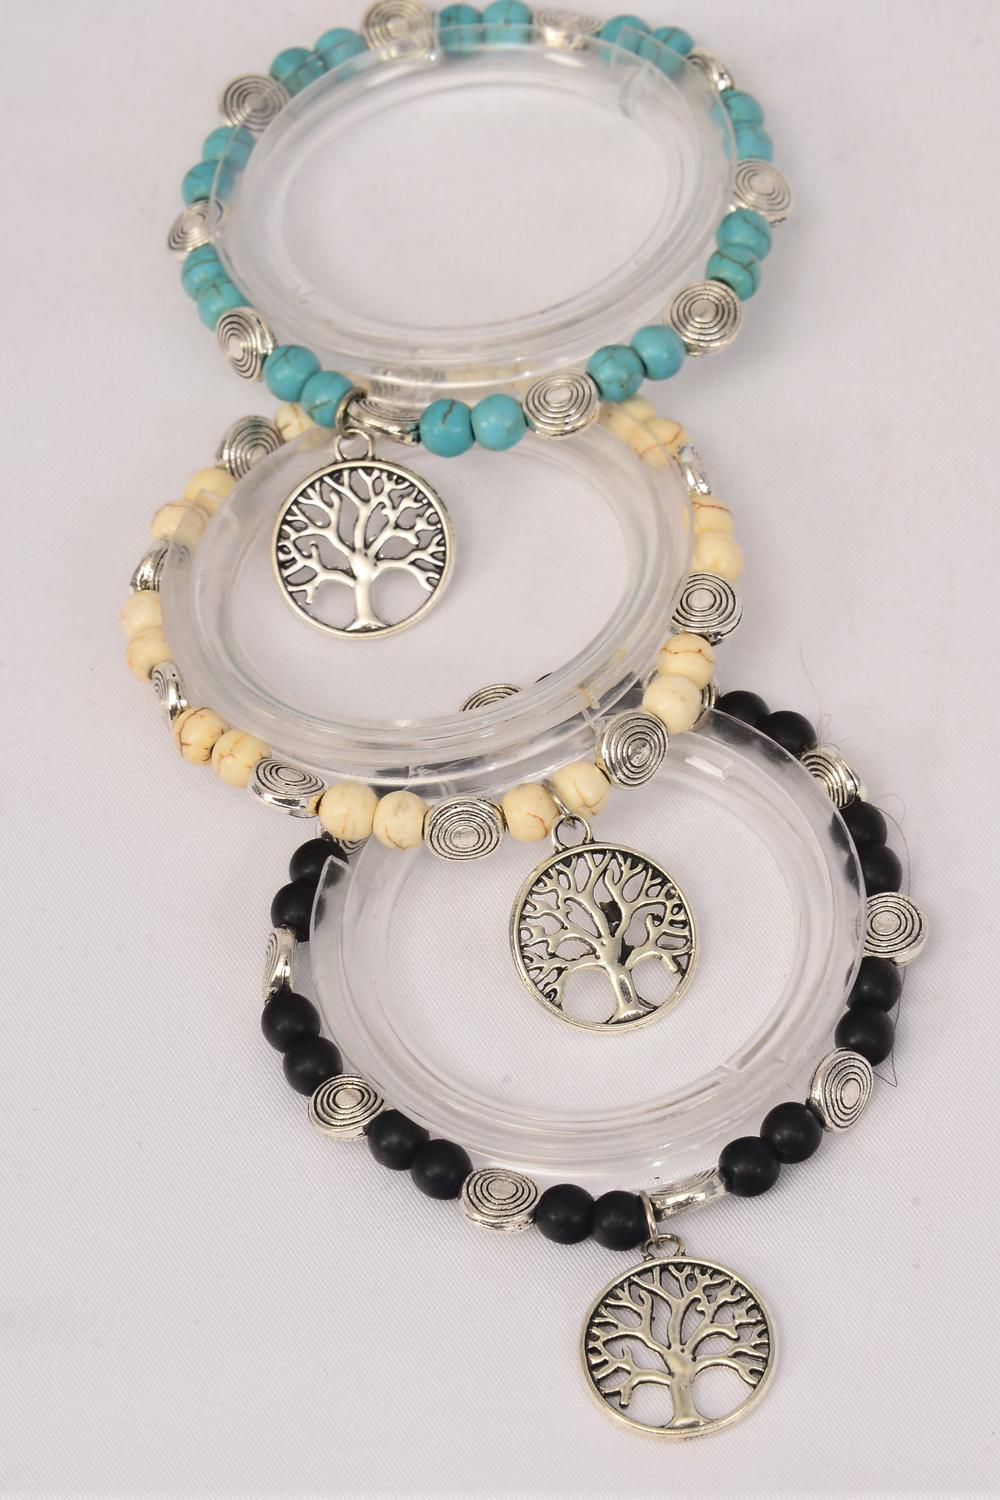 Bracelet Stretch 10 mm Semiprecious Stone Tree of Life/DZ **Stretch** 4 Black,4 Ivory,4 Turquoise Asst,Hang Tag & OPP Bag & UPC Code